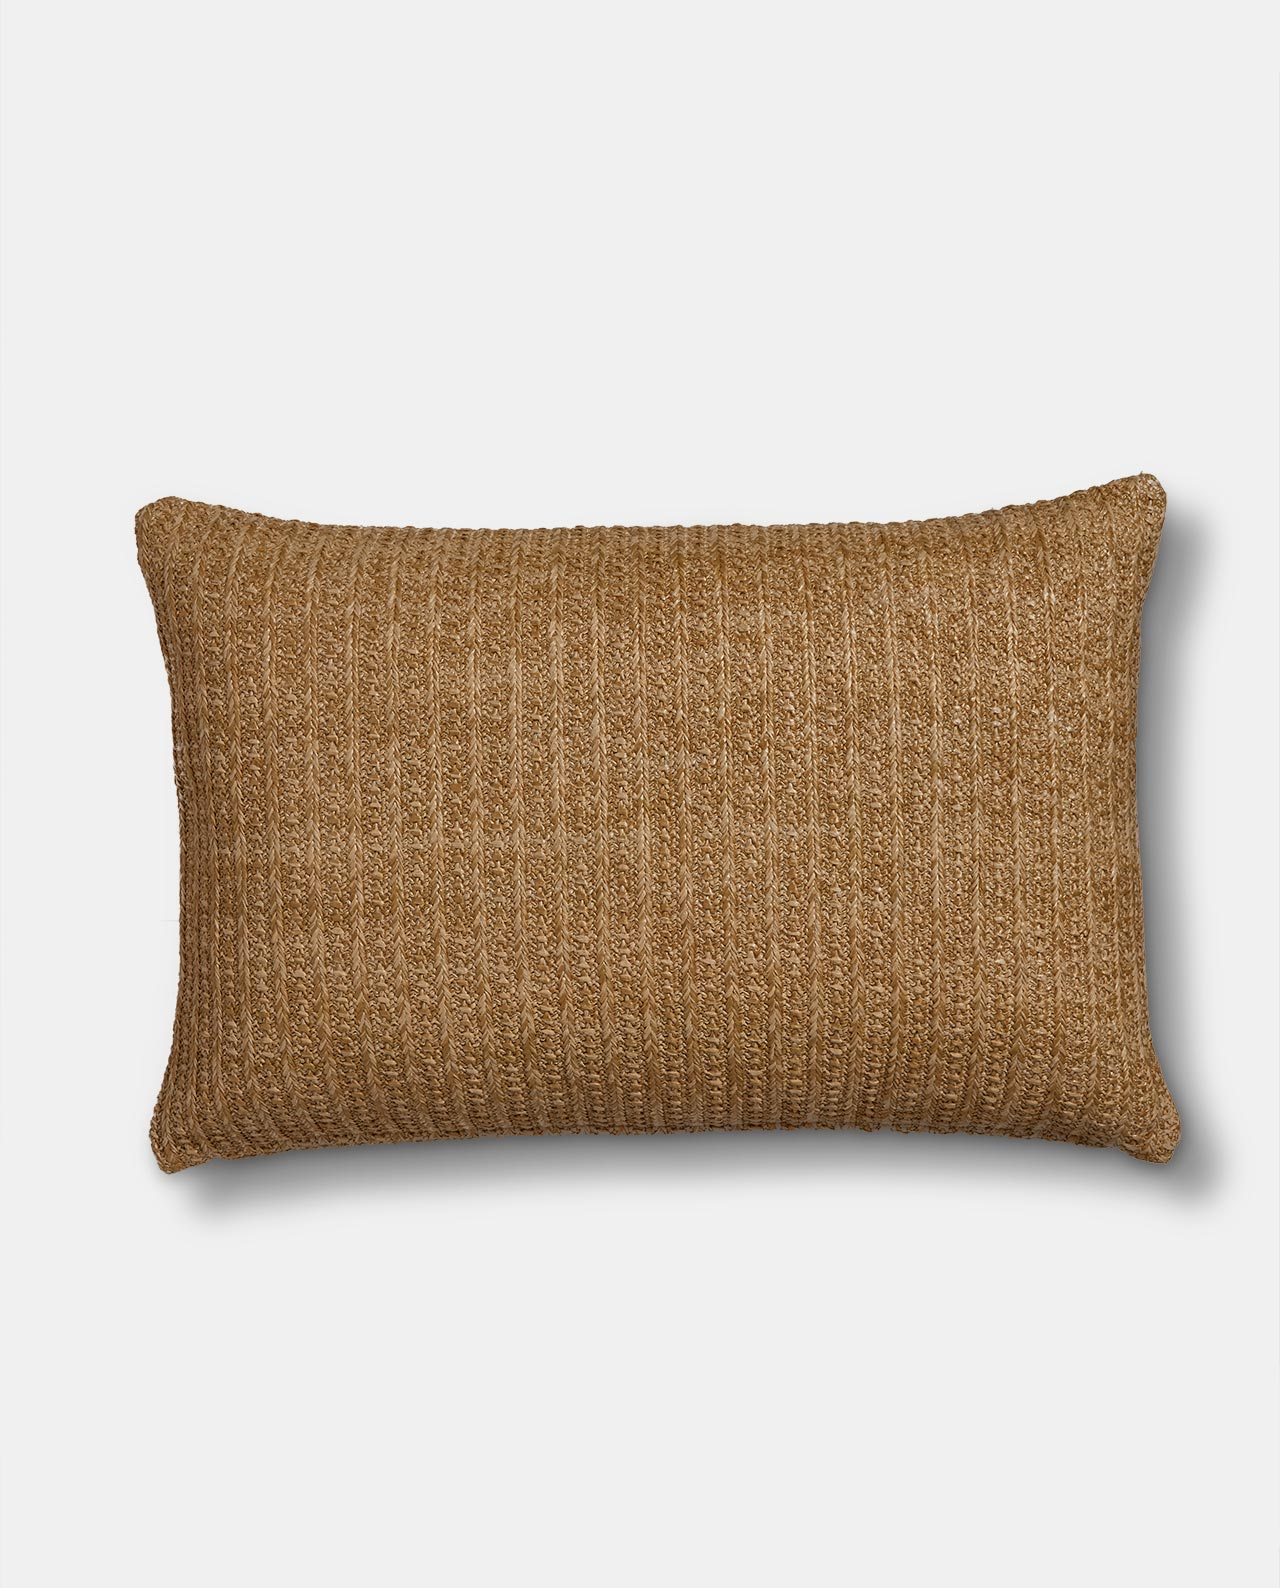 Natural Jute Cushion Cover 40x60cm